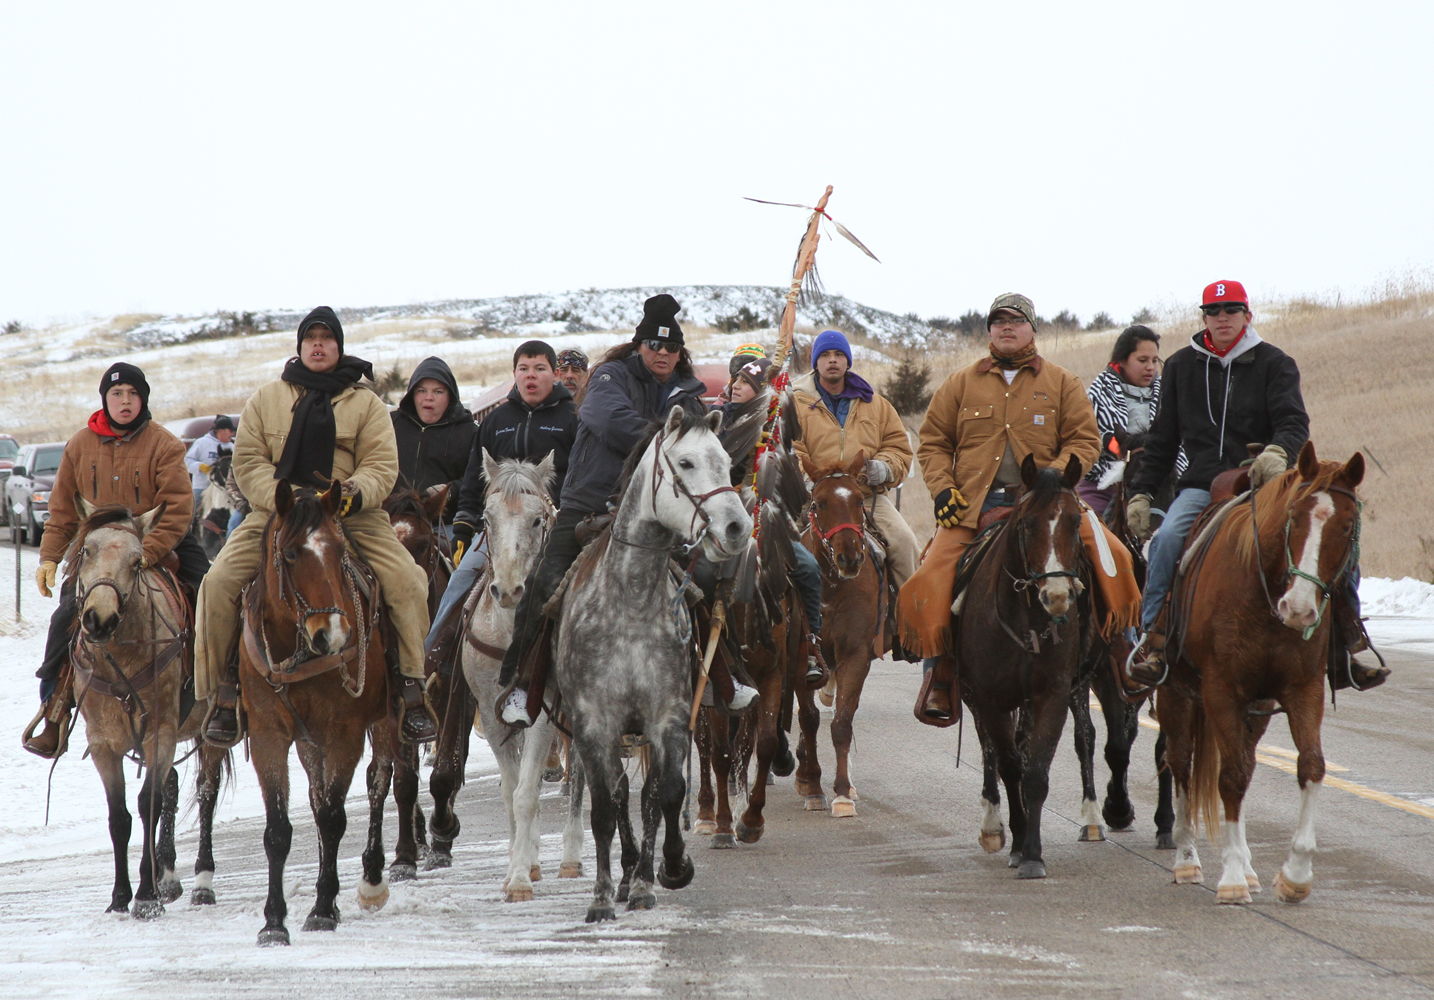 Riders on horseback journeyed from Lower Brule to Mankato, South Dakota for the Dakota 38 Memorial Ride.